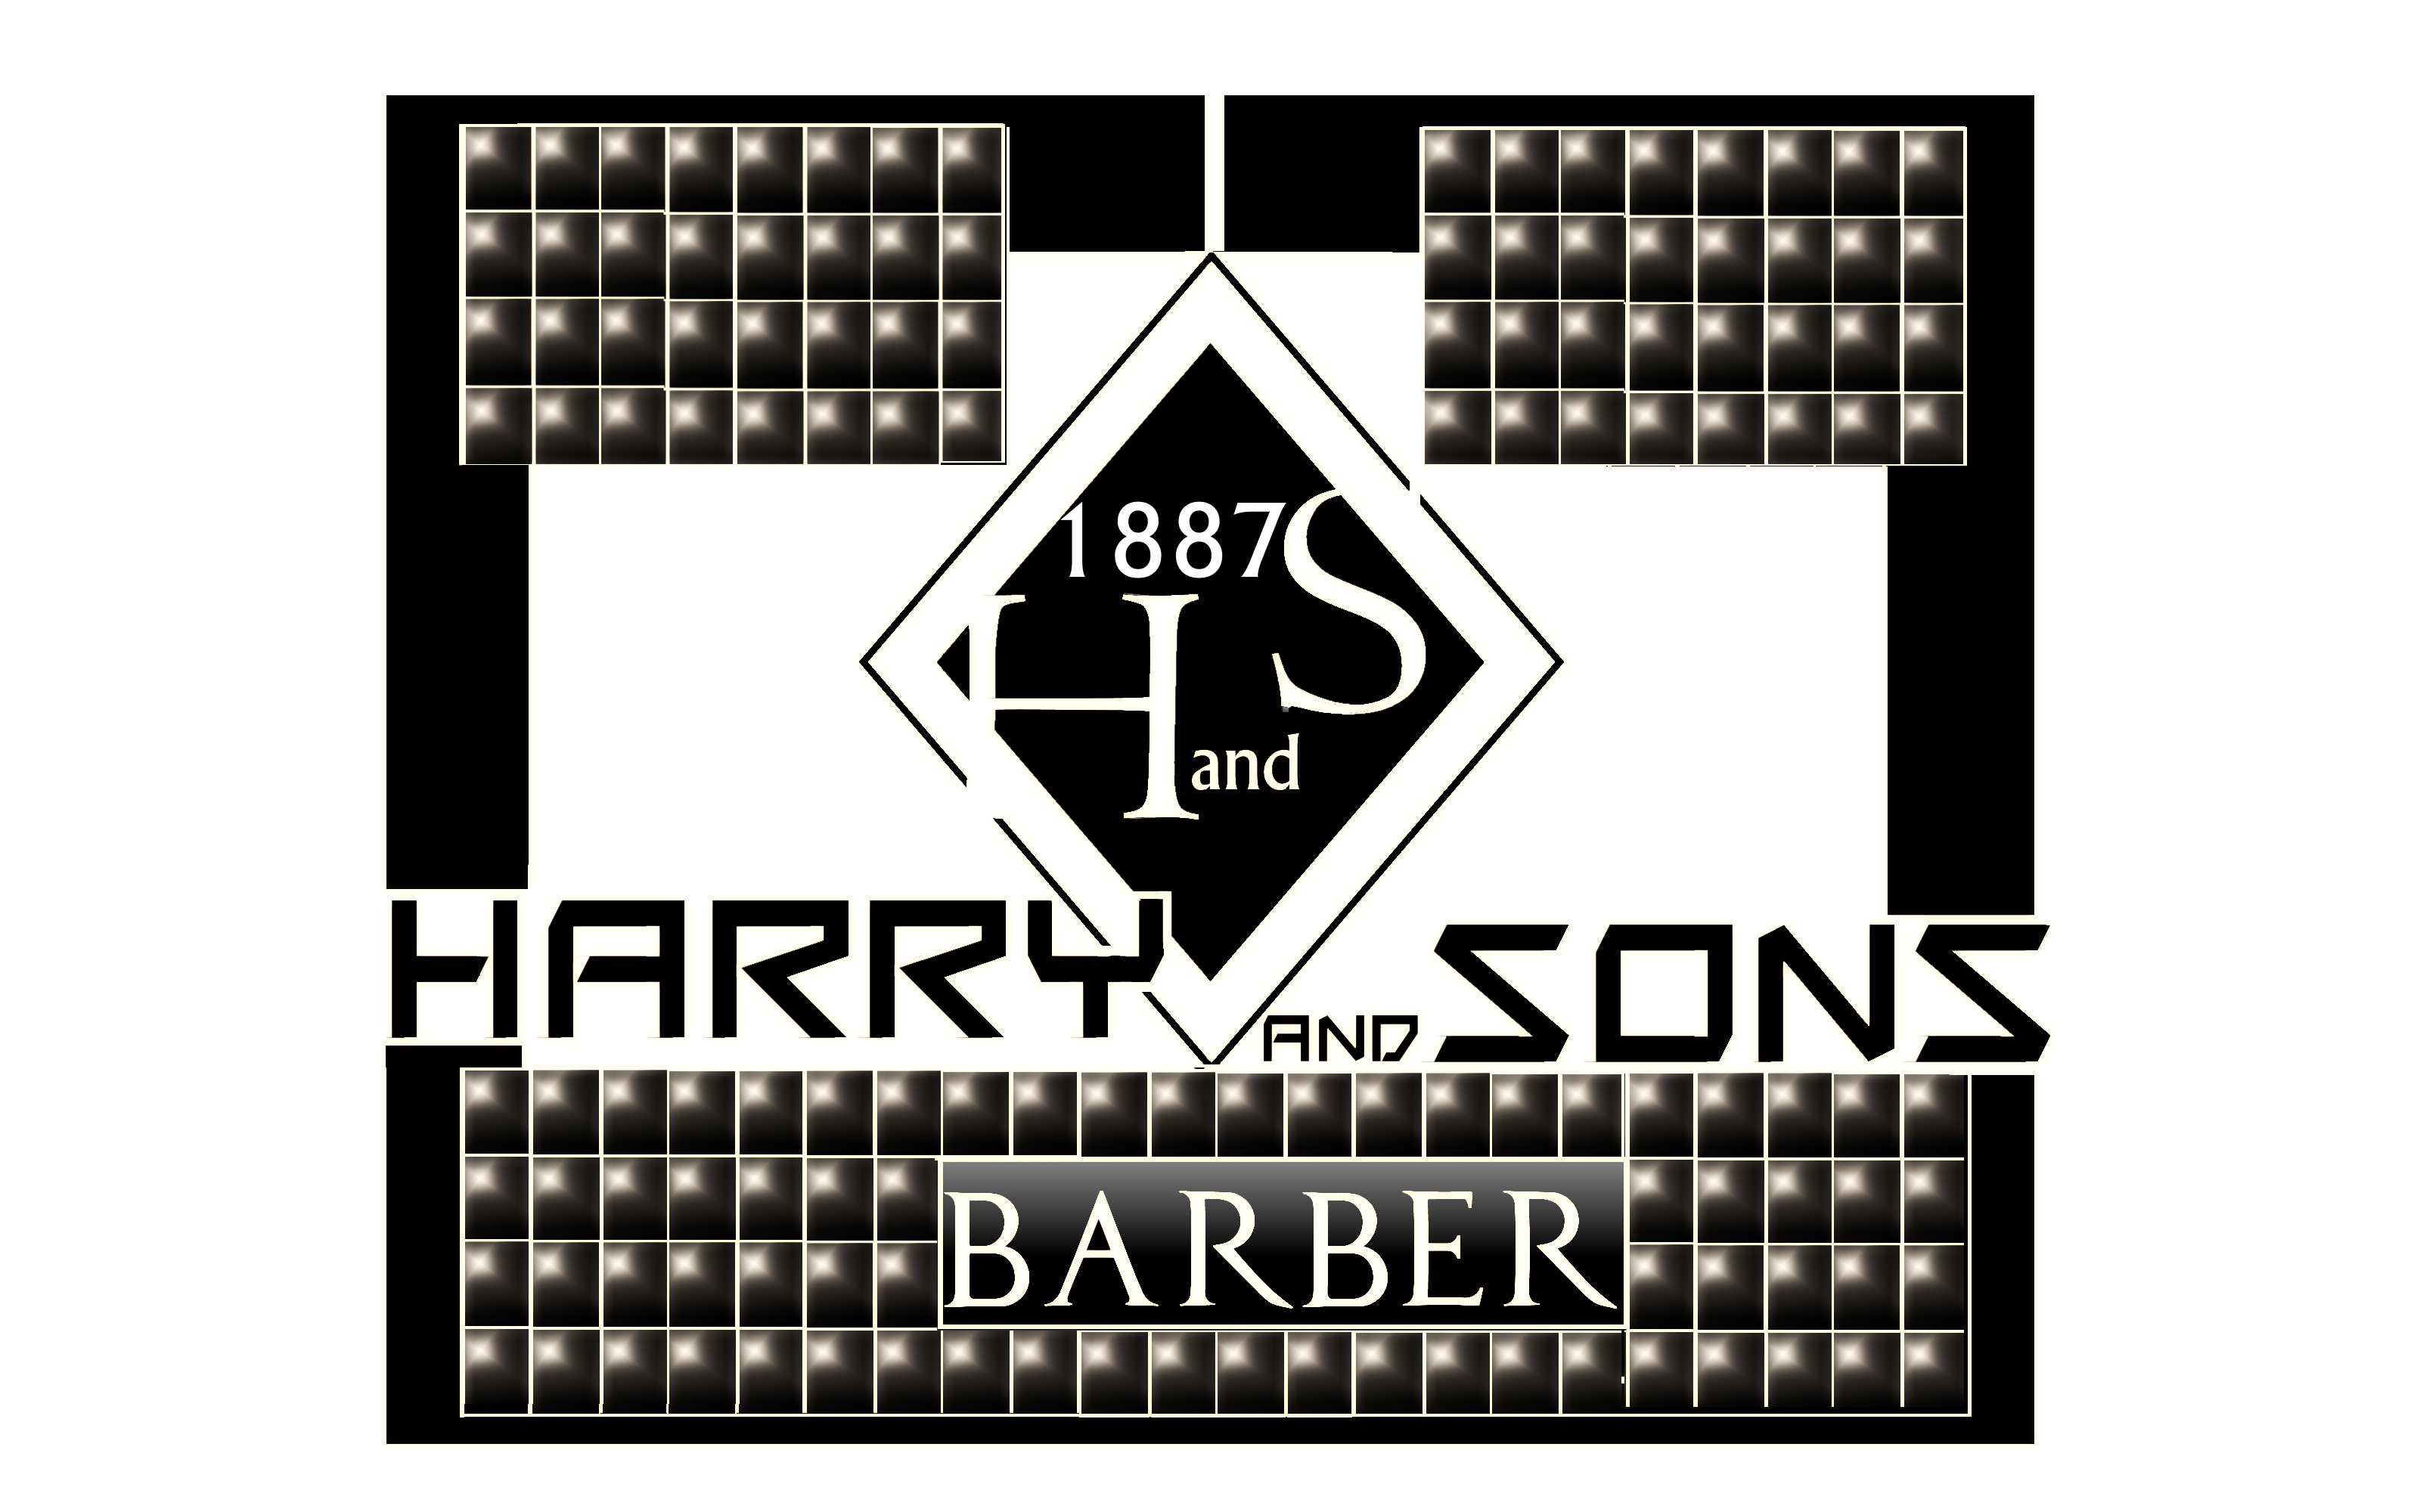 Logo Design by Roberto Bassi - Entry No. 205 in the Logo Design Contest Captivating Logo Design for Harry and Sons Barber.